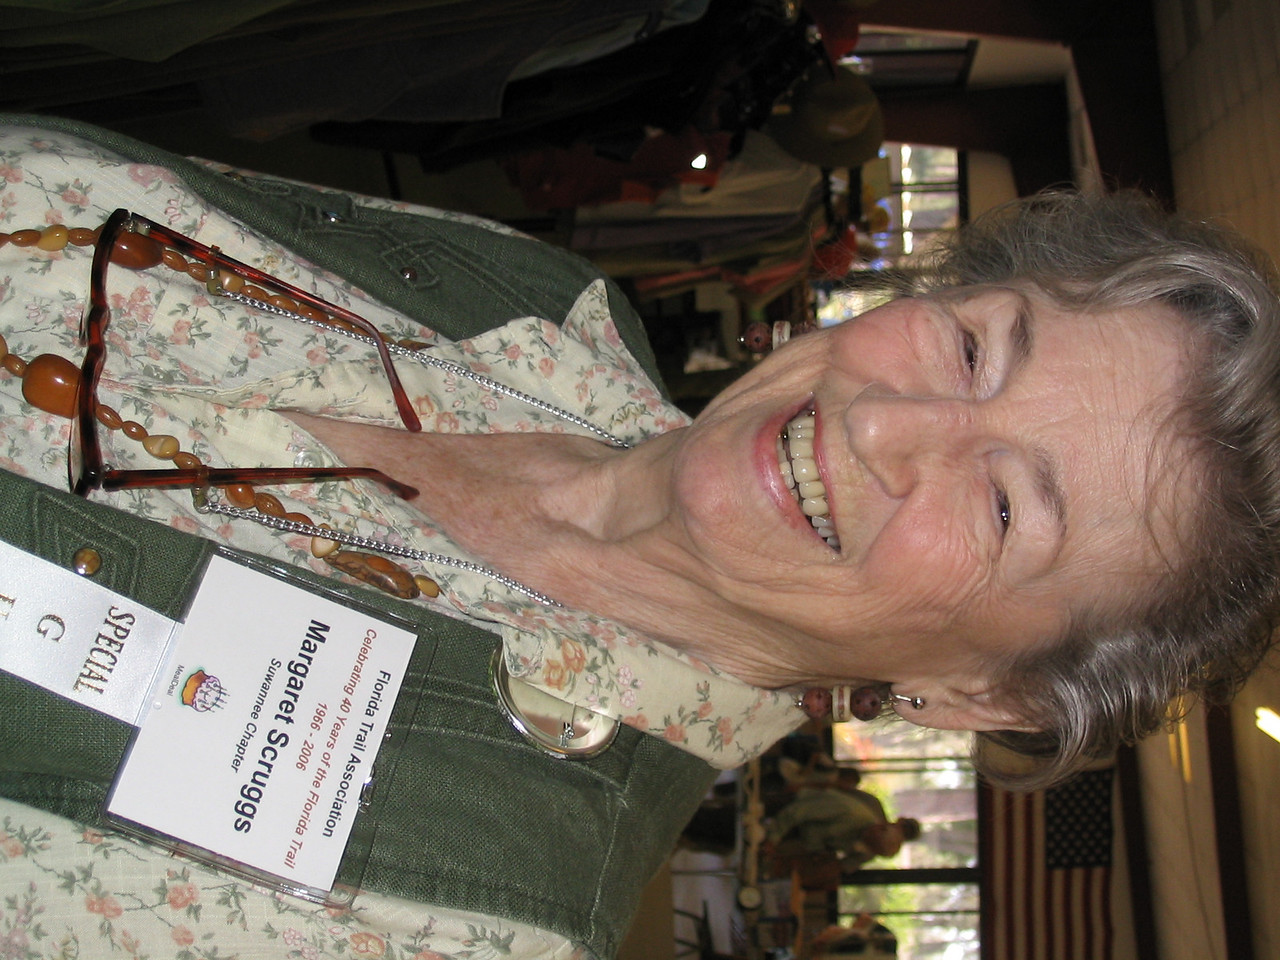 FTA's first employee and one of the founding members, Margaret Scruggs<br /> PHOTO CREDIT: Diane Wilkins / Florida Trail Association